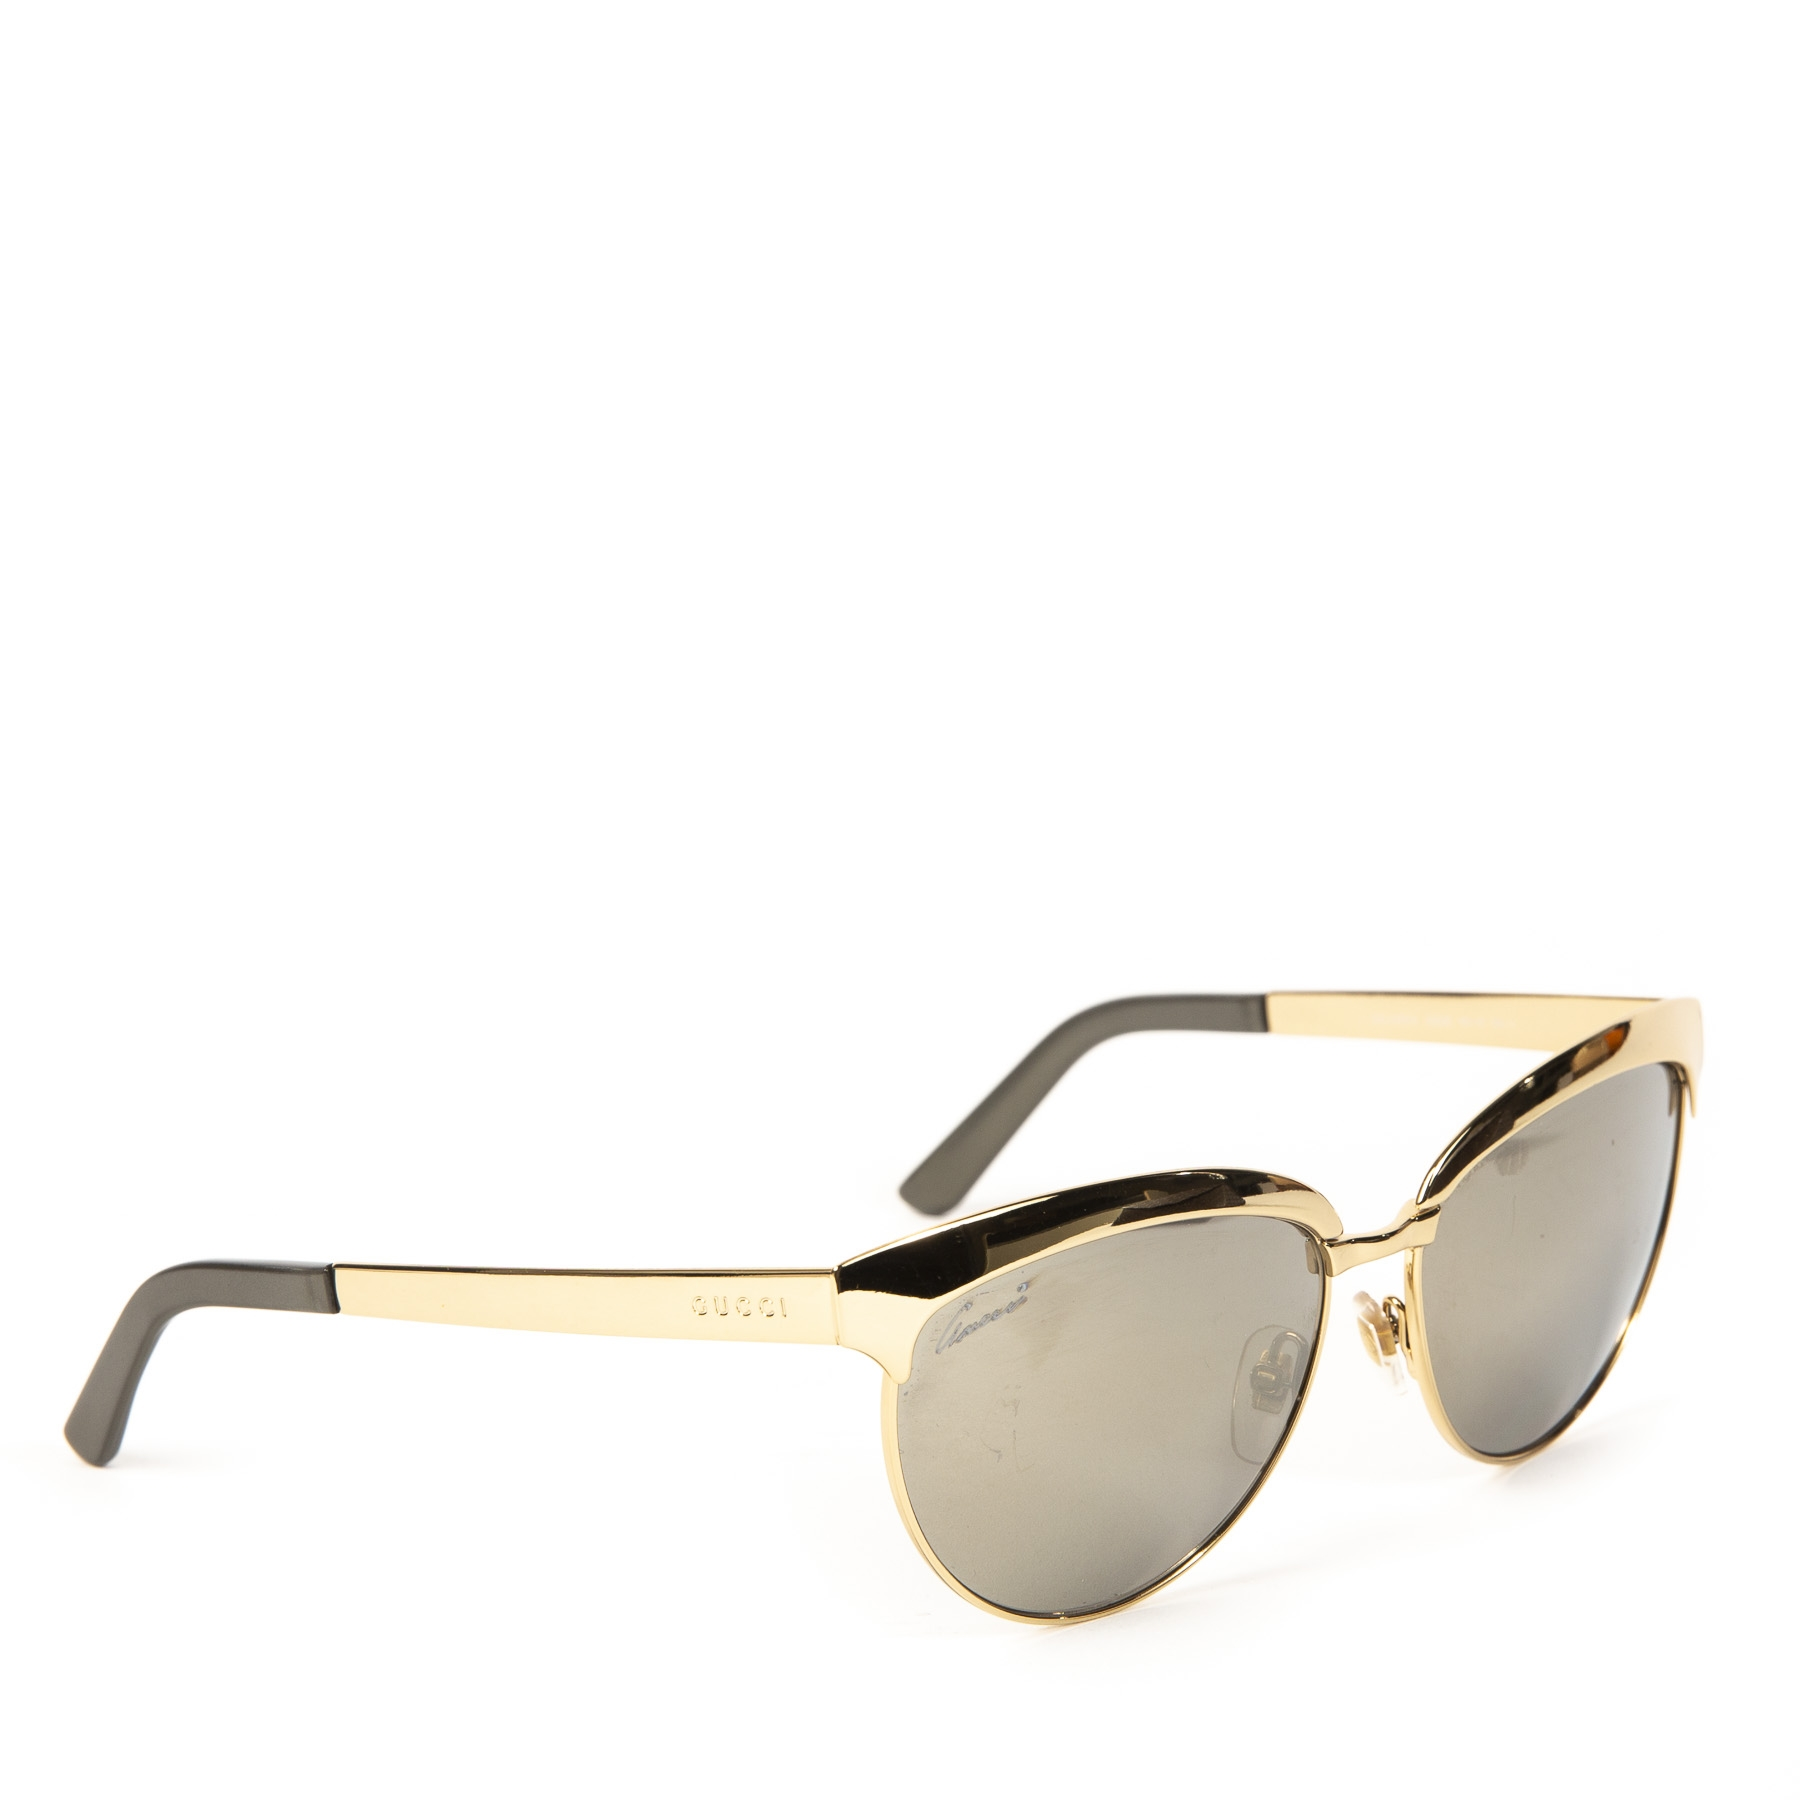 Gucci Gold Mirrored Cat Eye Sunglasses